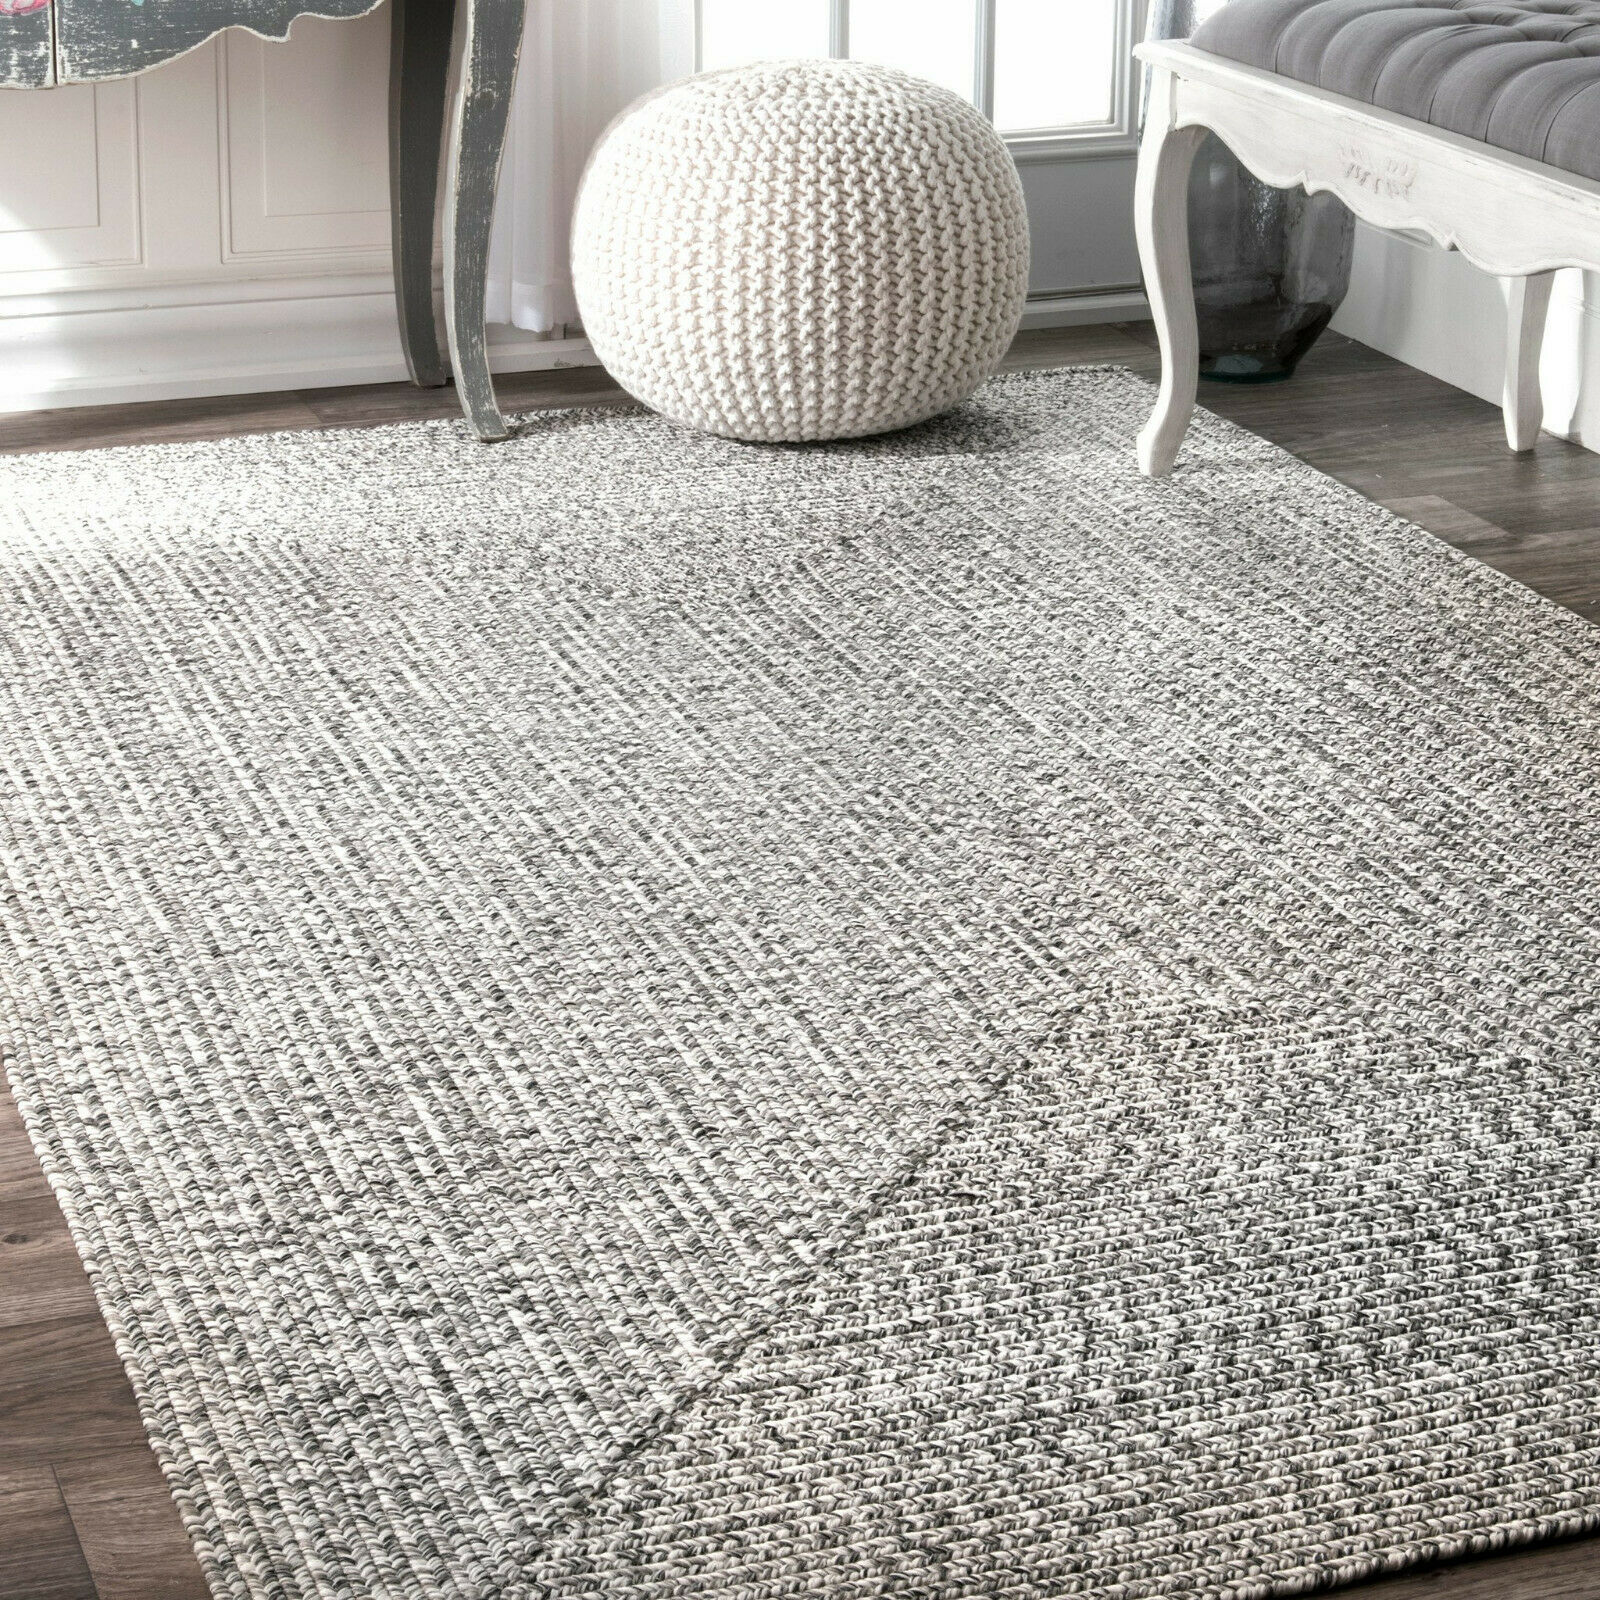 Indoor Outdoor Rug Braided Rugs Small Large Patio Kitchen Li